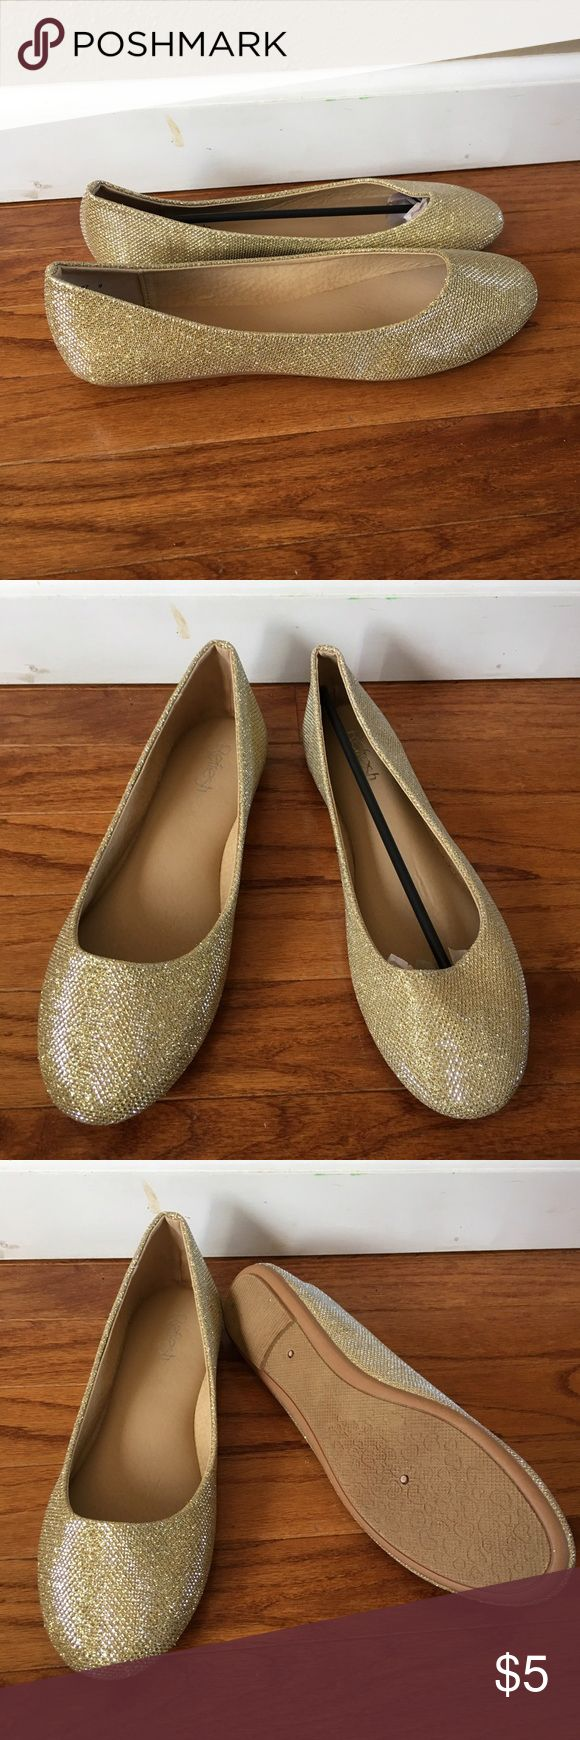 Gold sparkly shoes brand new Brand new gold sparkly shoes size 9 Shoes Flats & Loafers